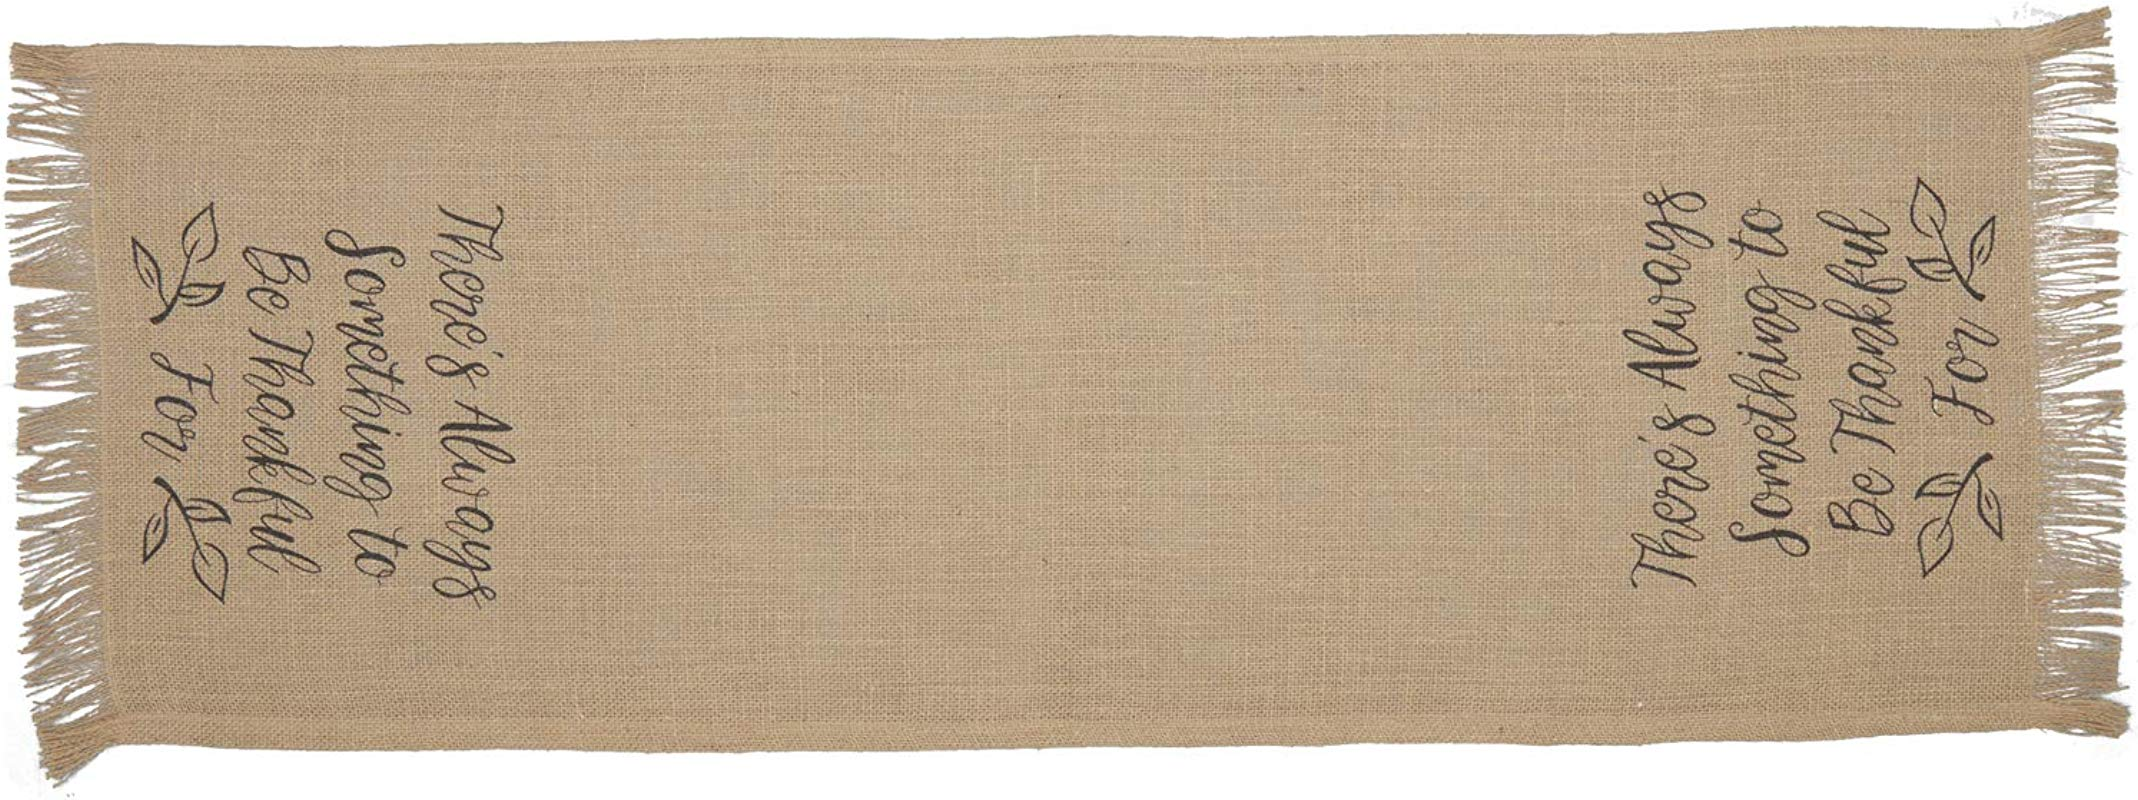 VHC Brands 56715 Jute Burlap Natural Thankful Text Rustic Decor Stenciled 13x36 Runner Tan